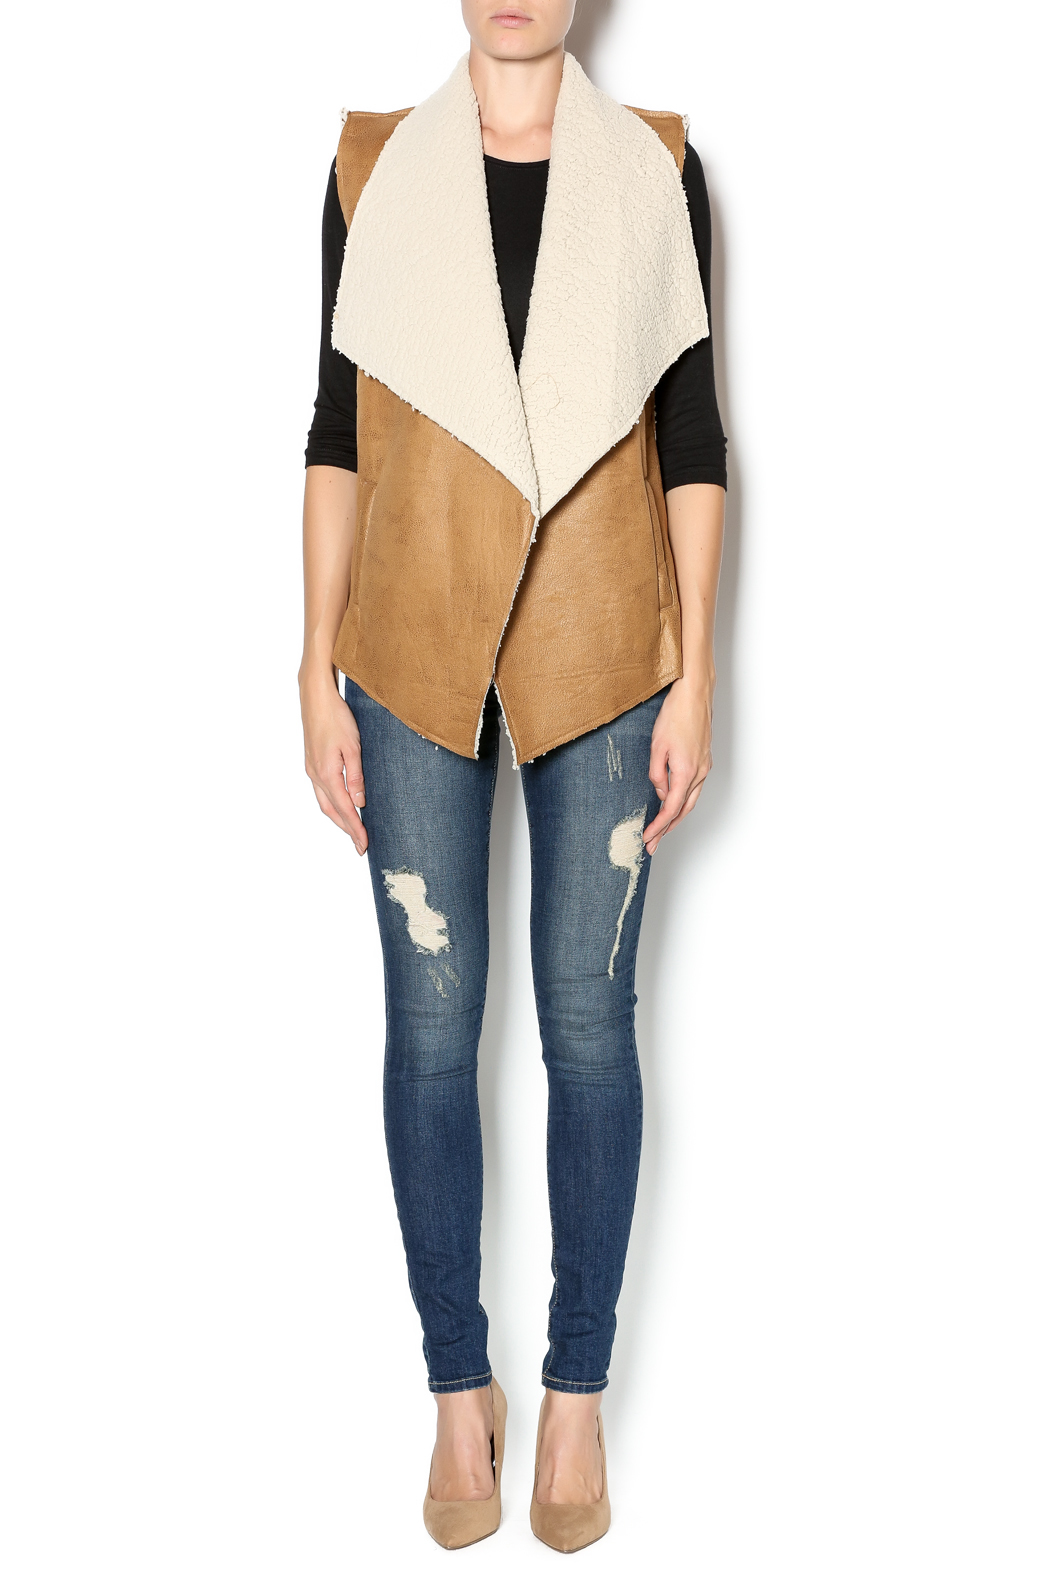 Love Tree Save A Horse Vest from Arkansas by Adara